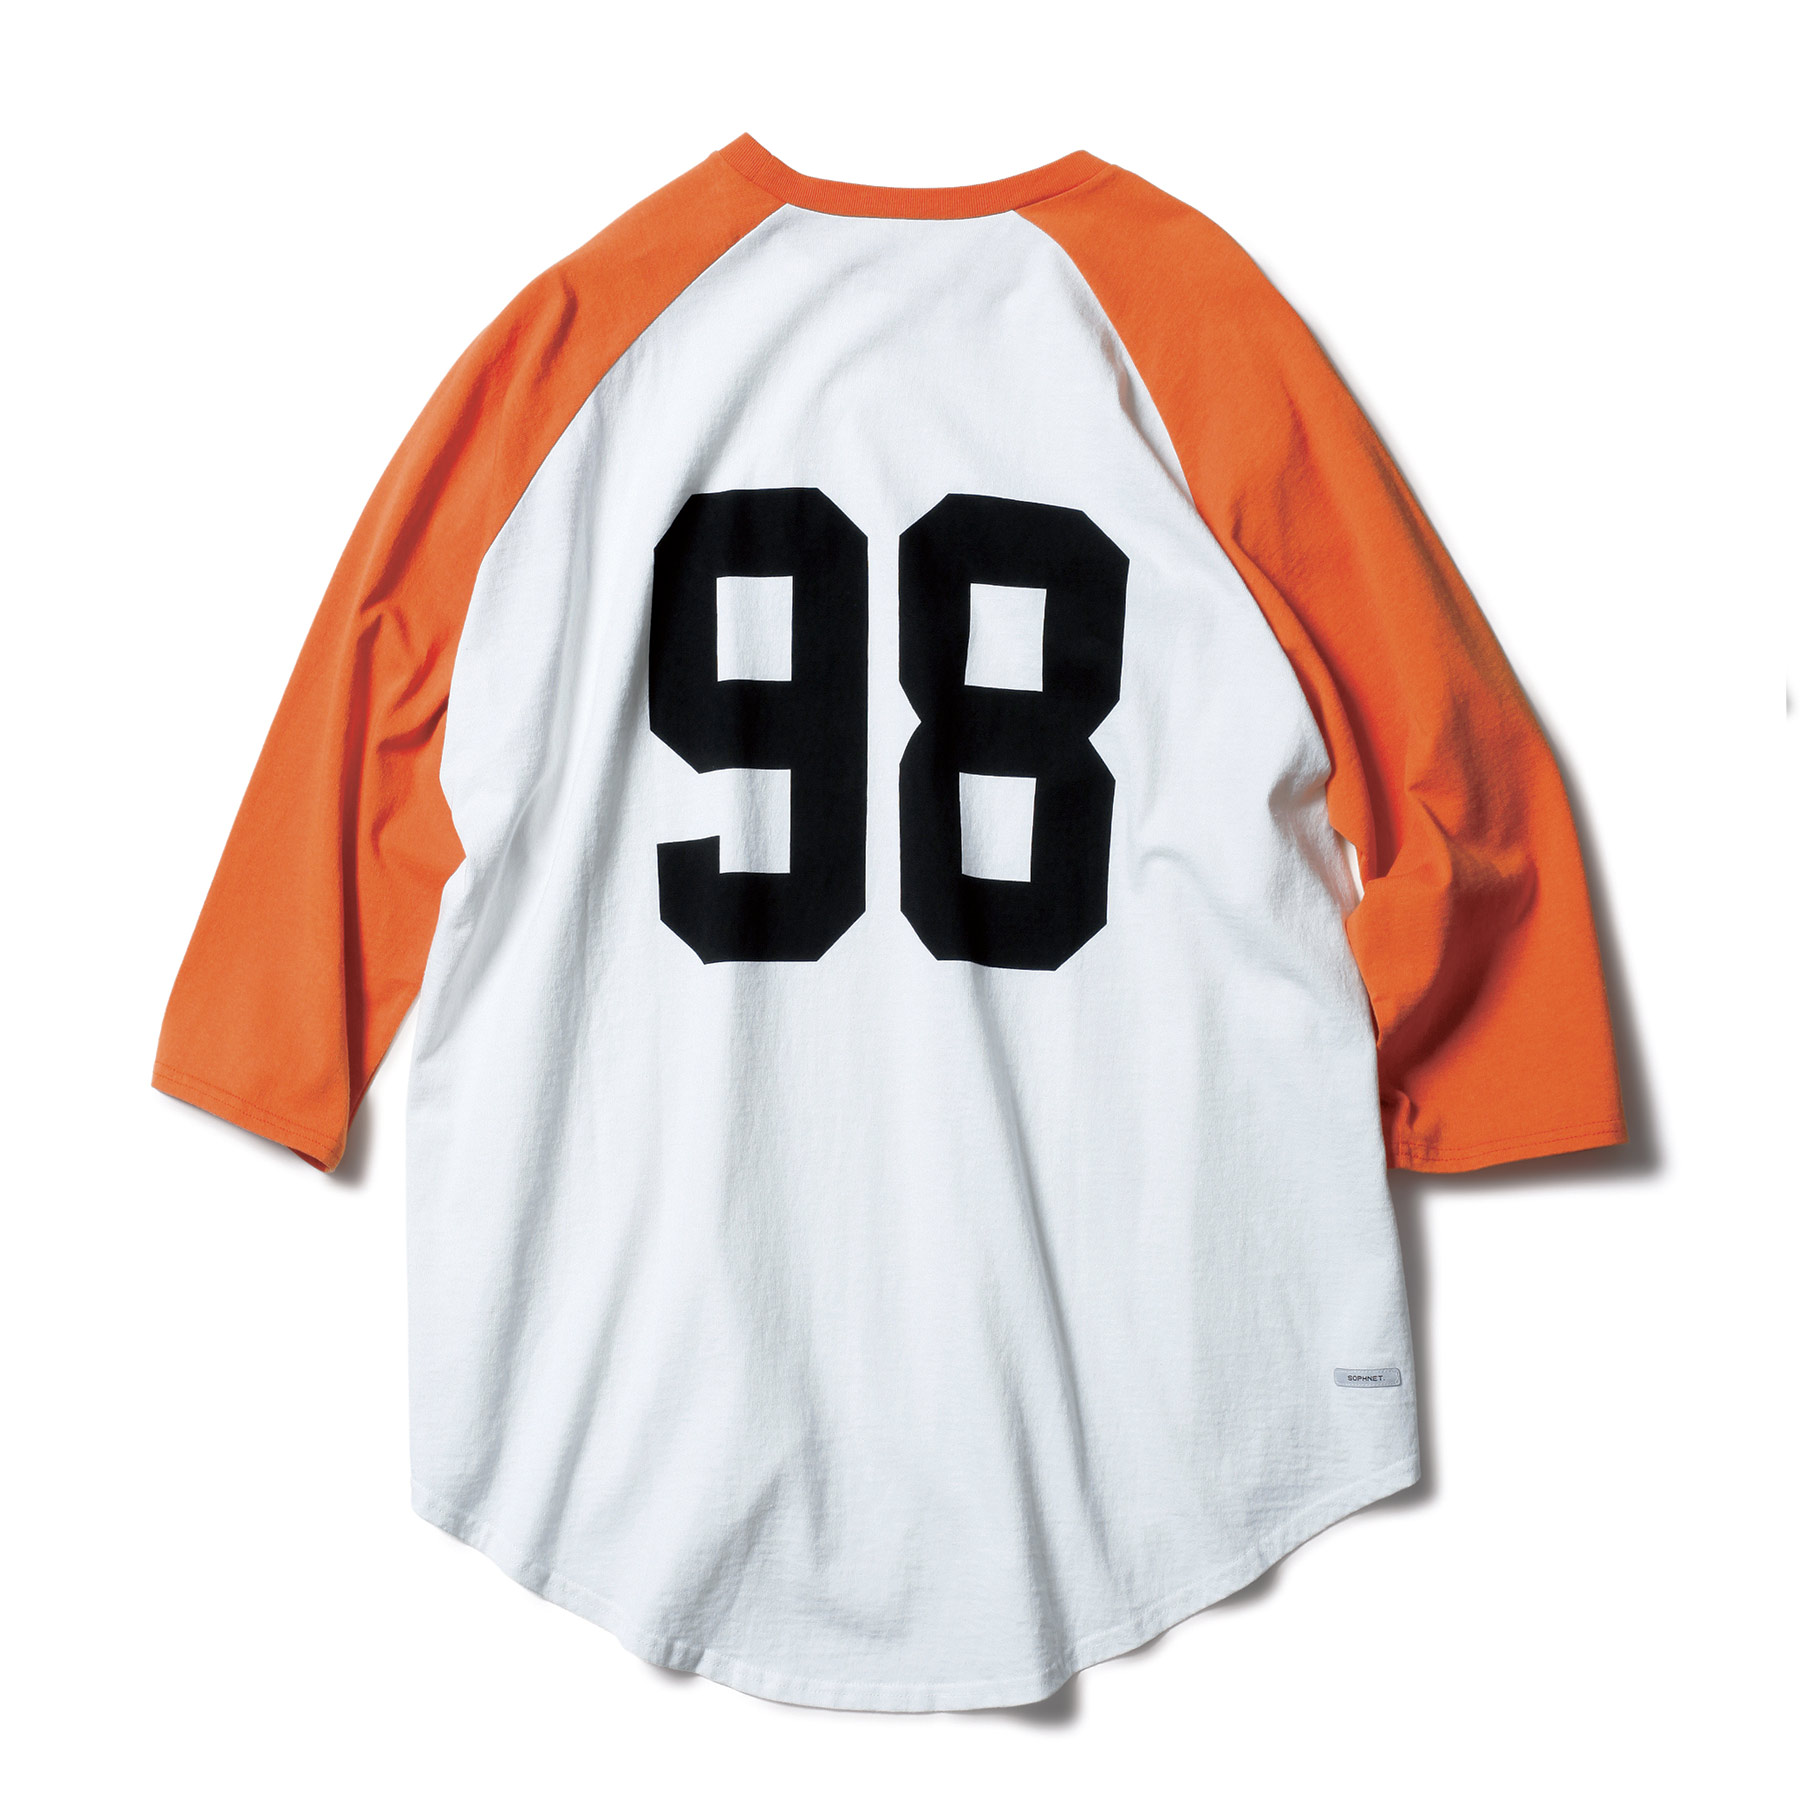 SOPHNET. / 3/4 SLEEVE BIG BASEBALL TEE -orange